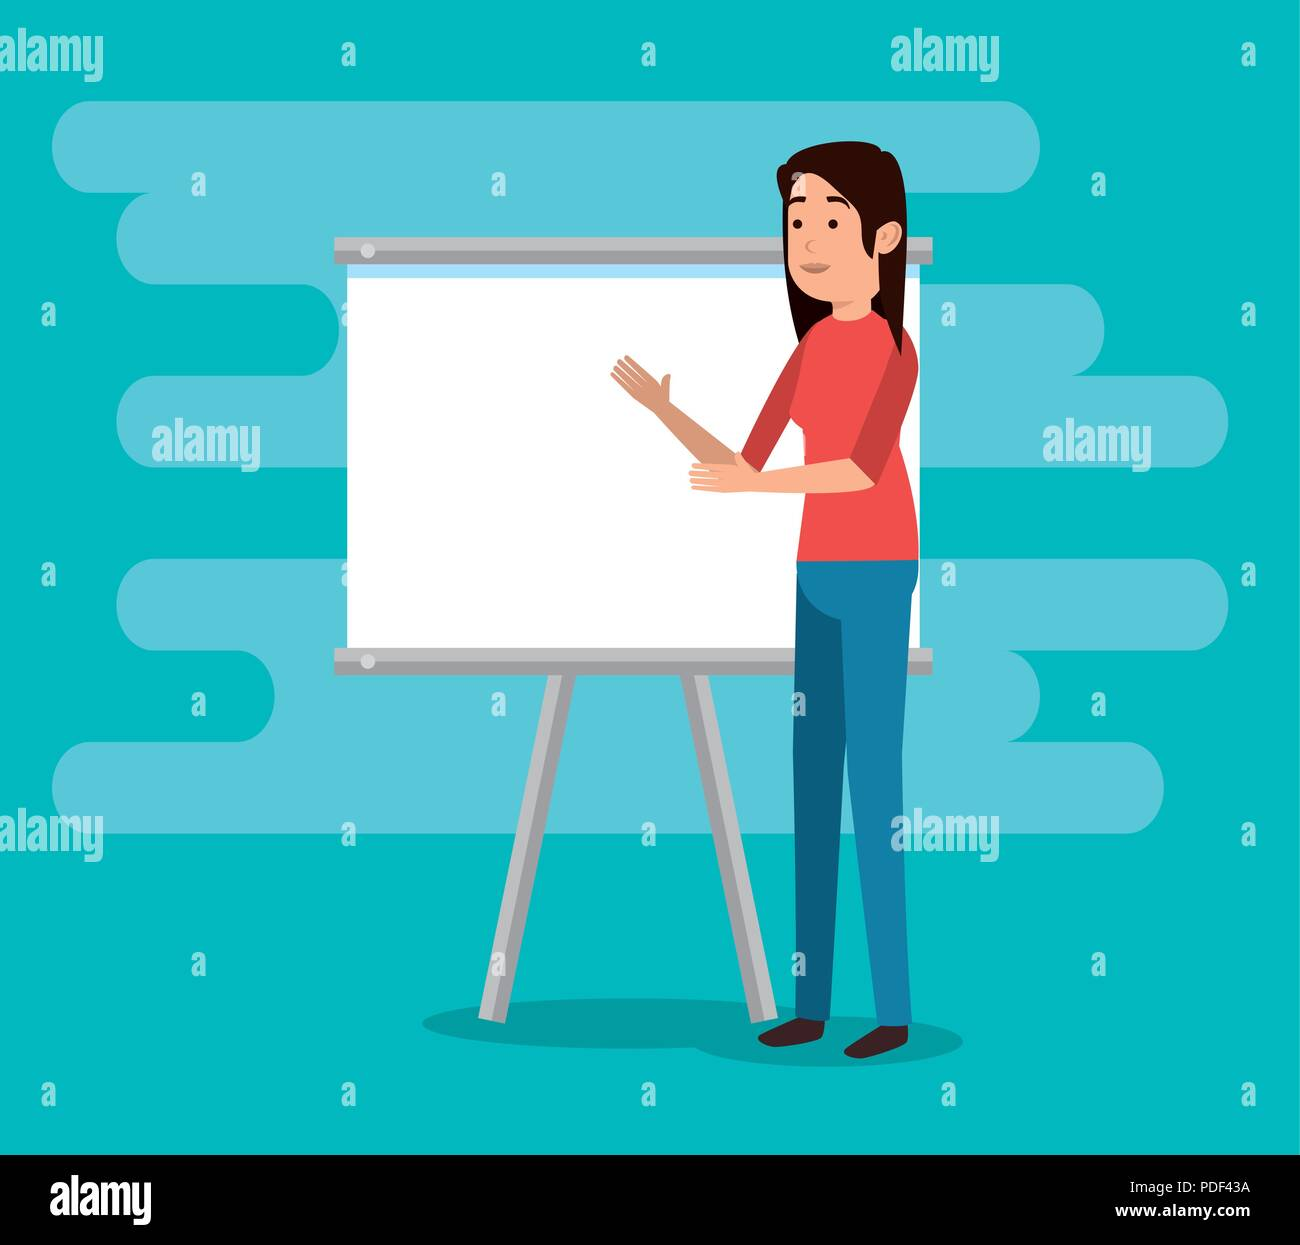 teacher woman with training board - Stock Vector